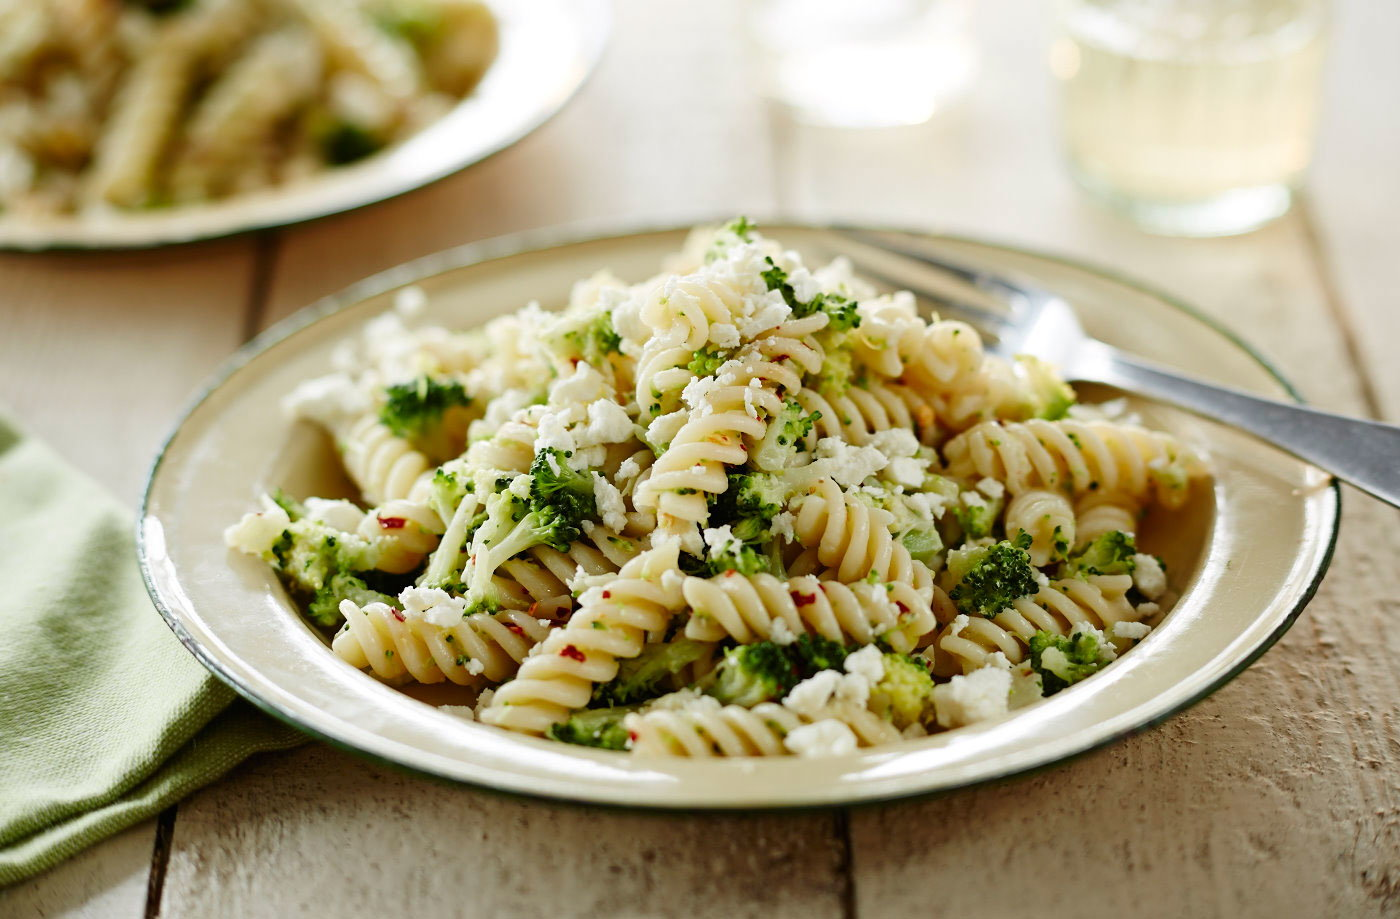 Image result for Spicy Broccoli and Cheese Pasta Recipe